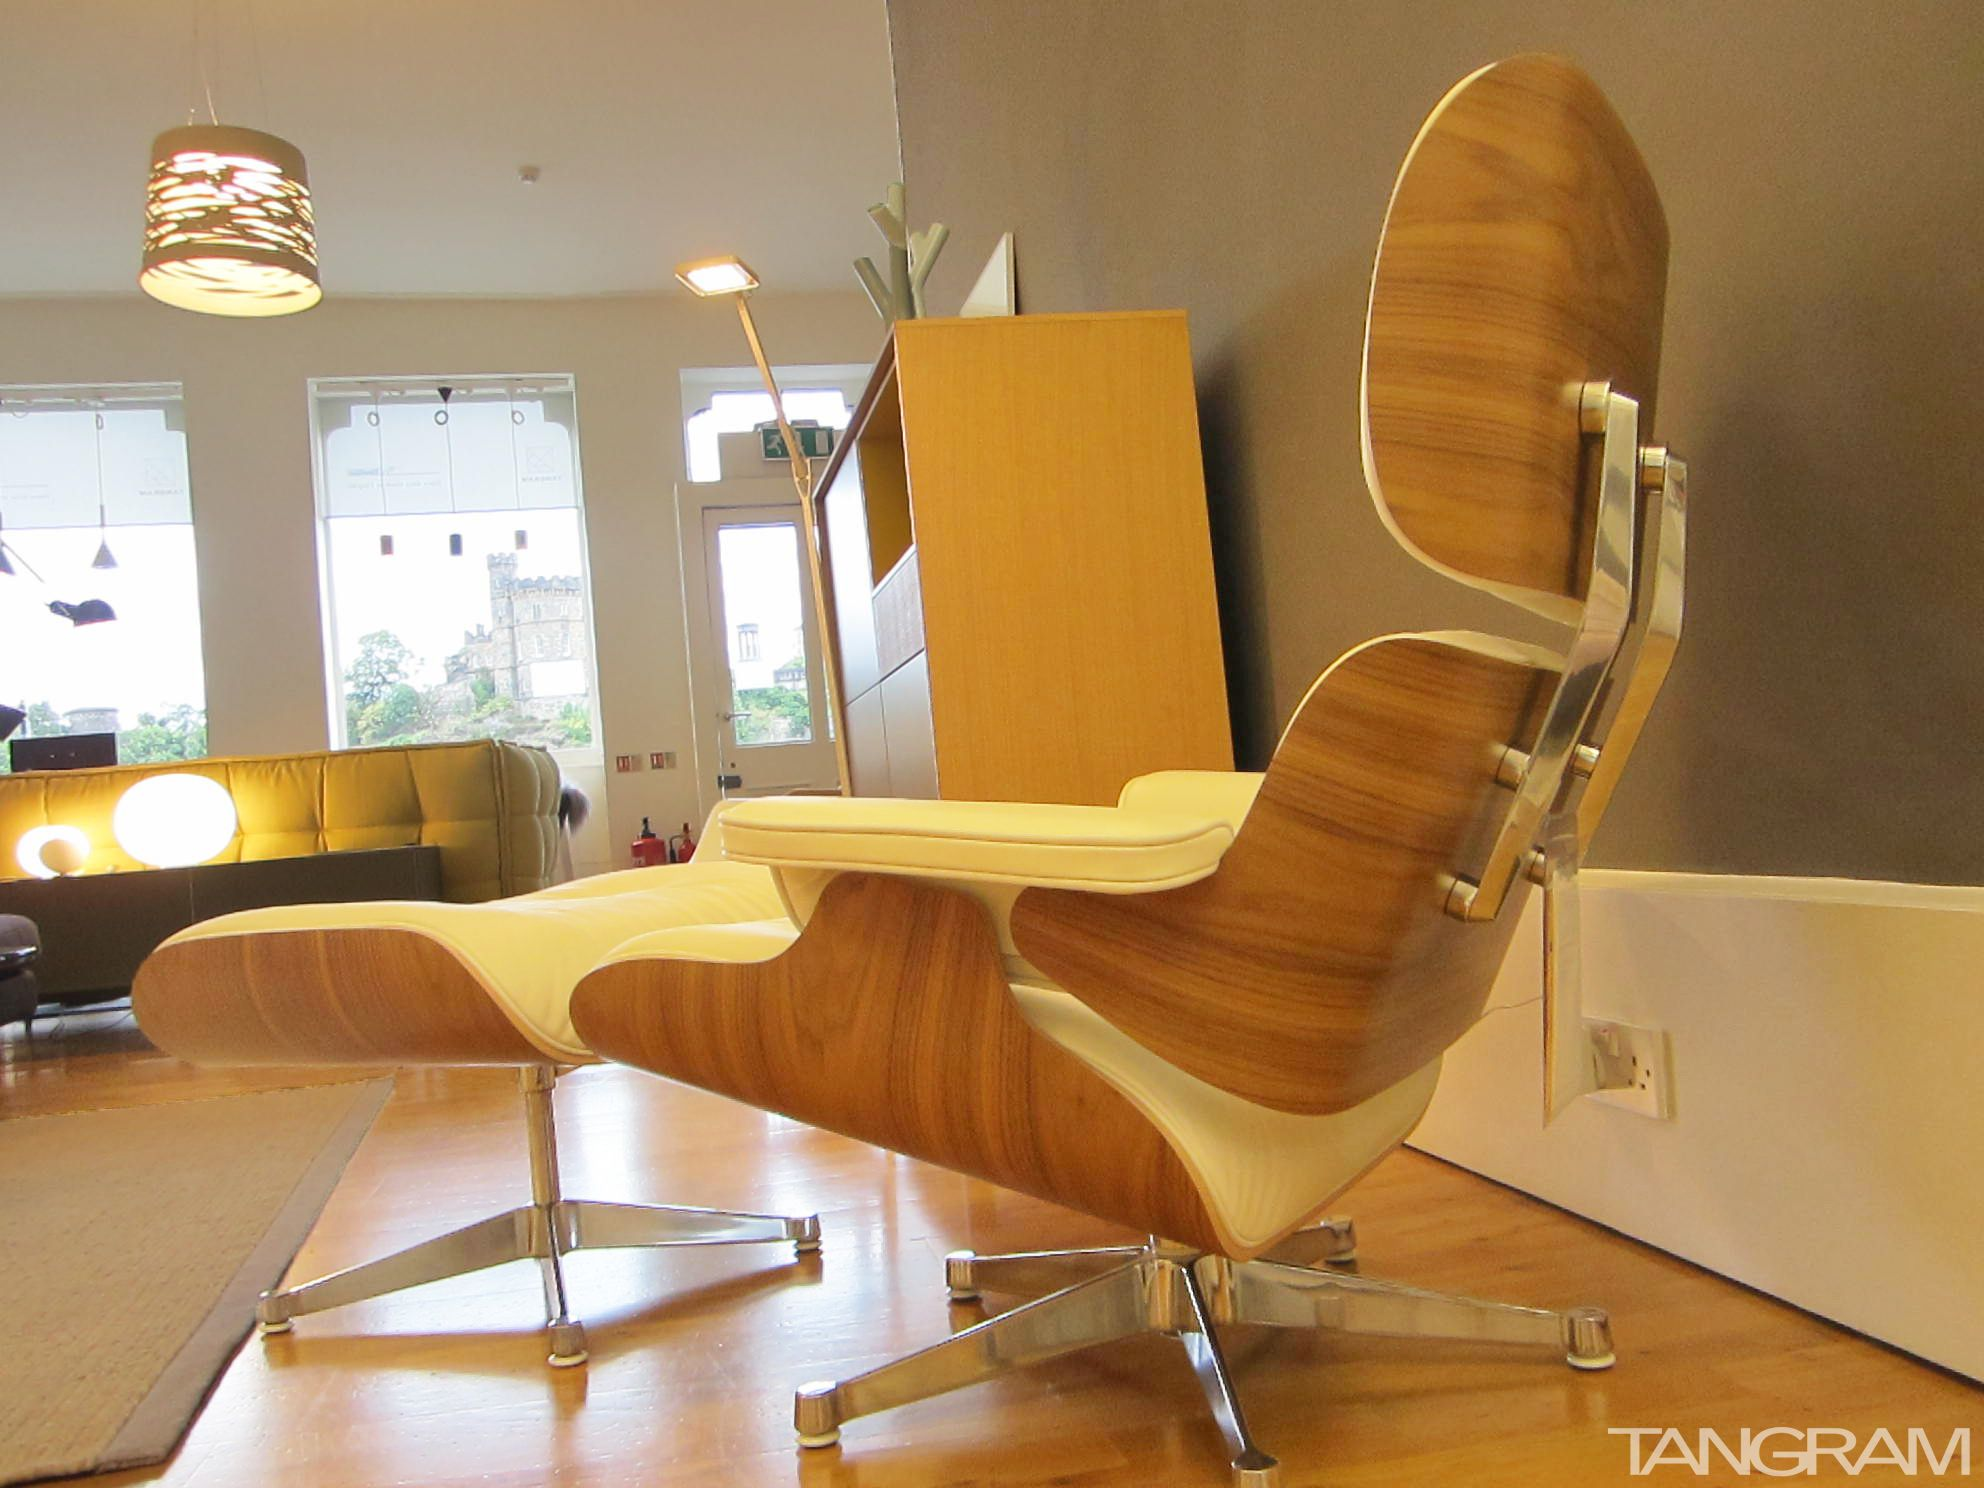 Eames lounge chair and ottoman in 'snow' leather and